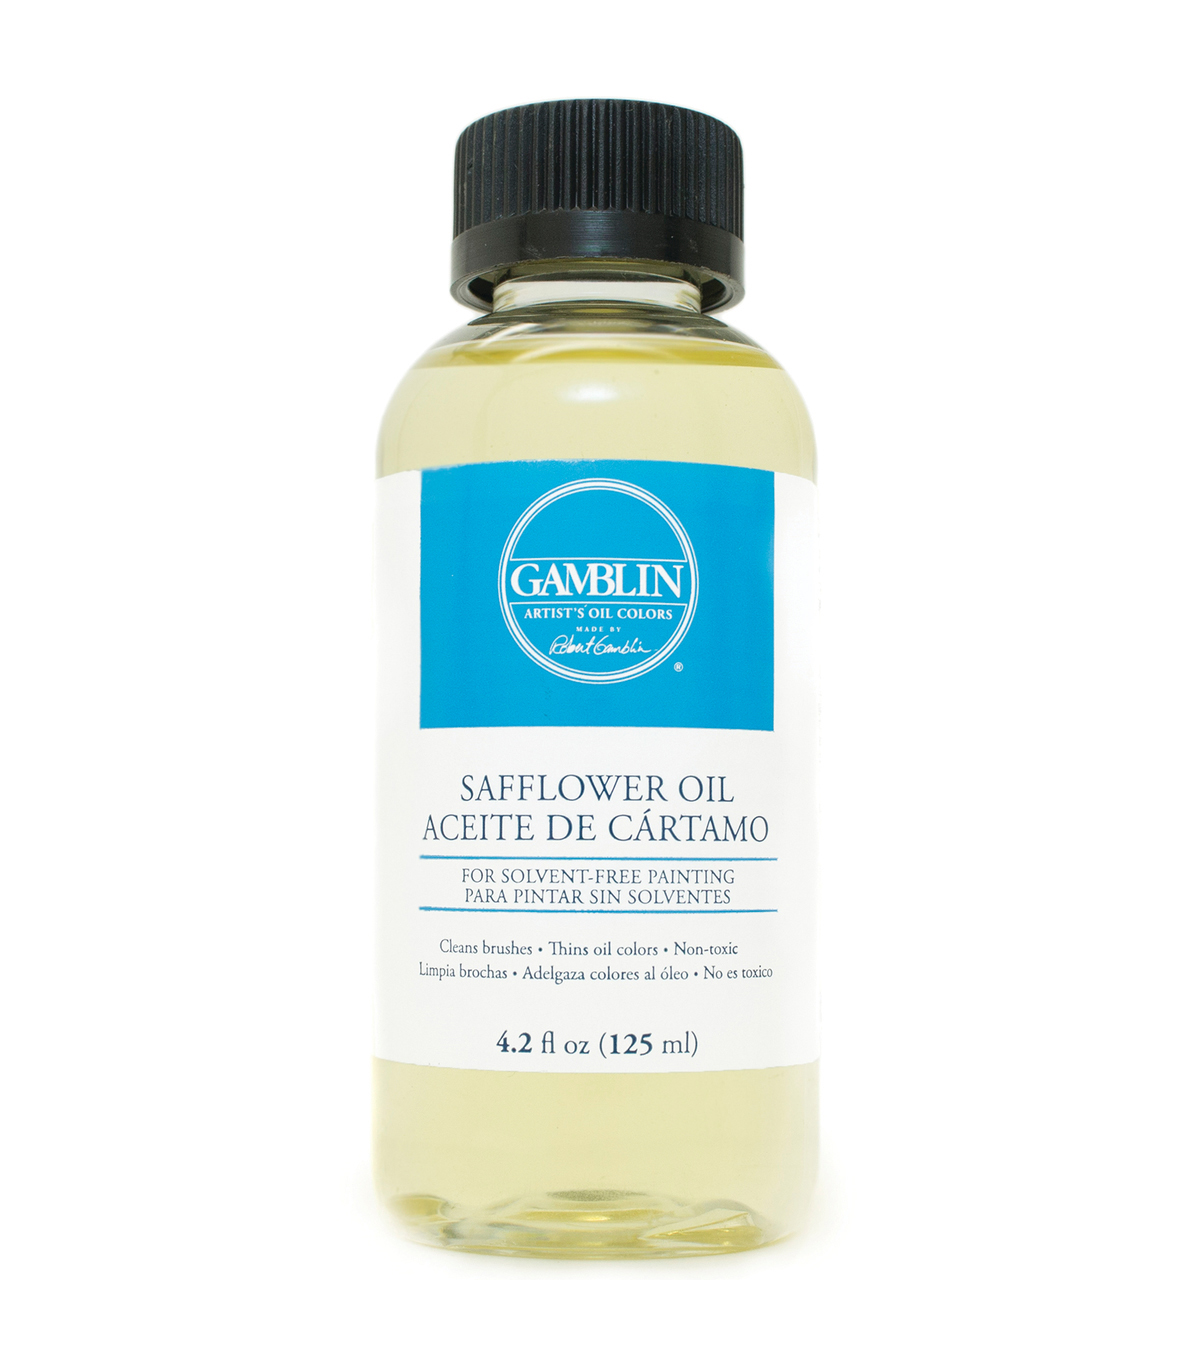 Gamblin Safflower Oil 4.2oz.